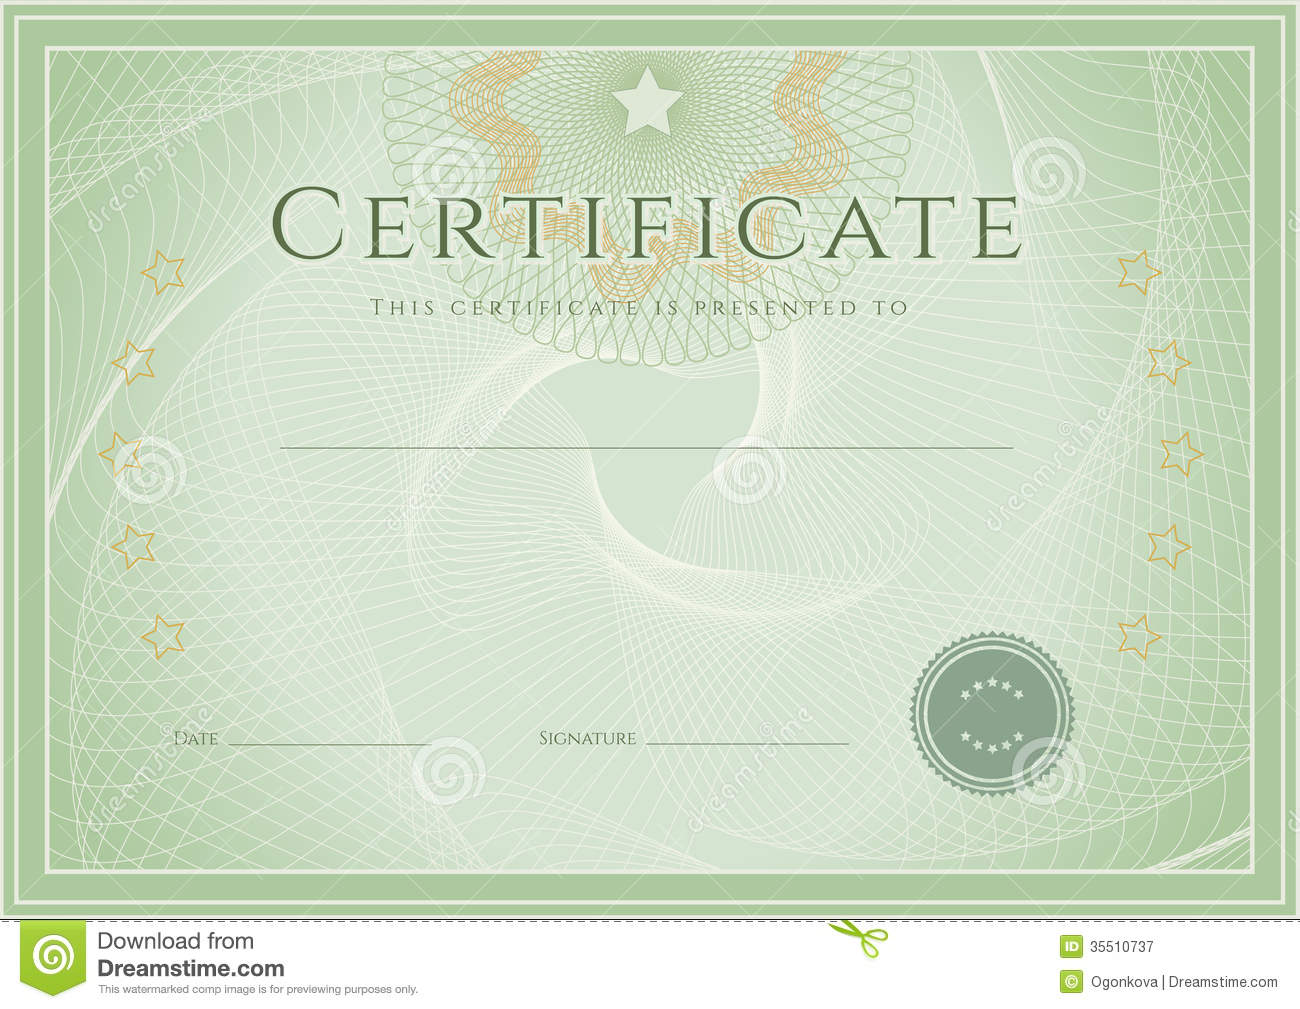 Certificate diploma award template grunge patte royalty free royalty free stock photo download certificate diploma award template yadclub Choice Image